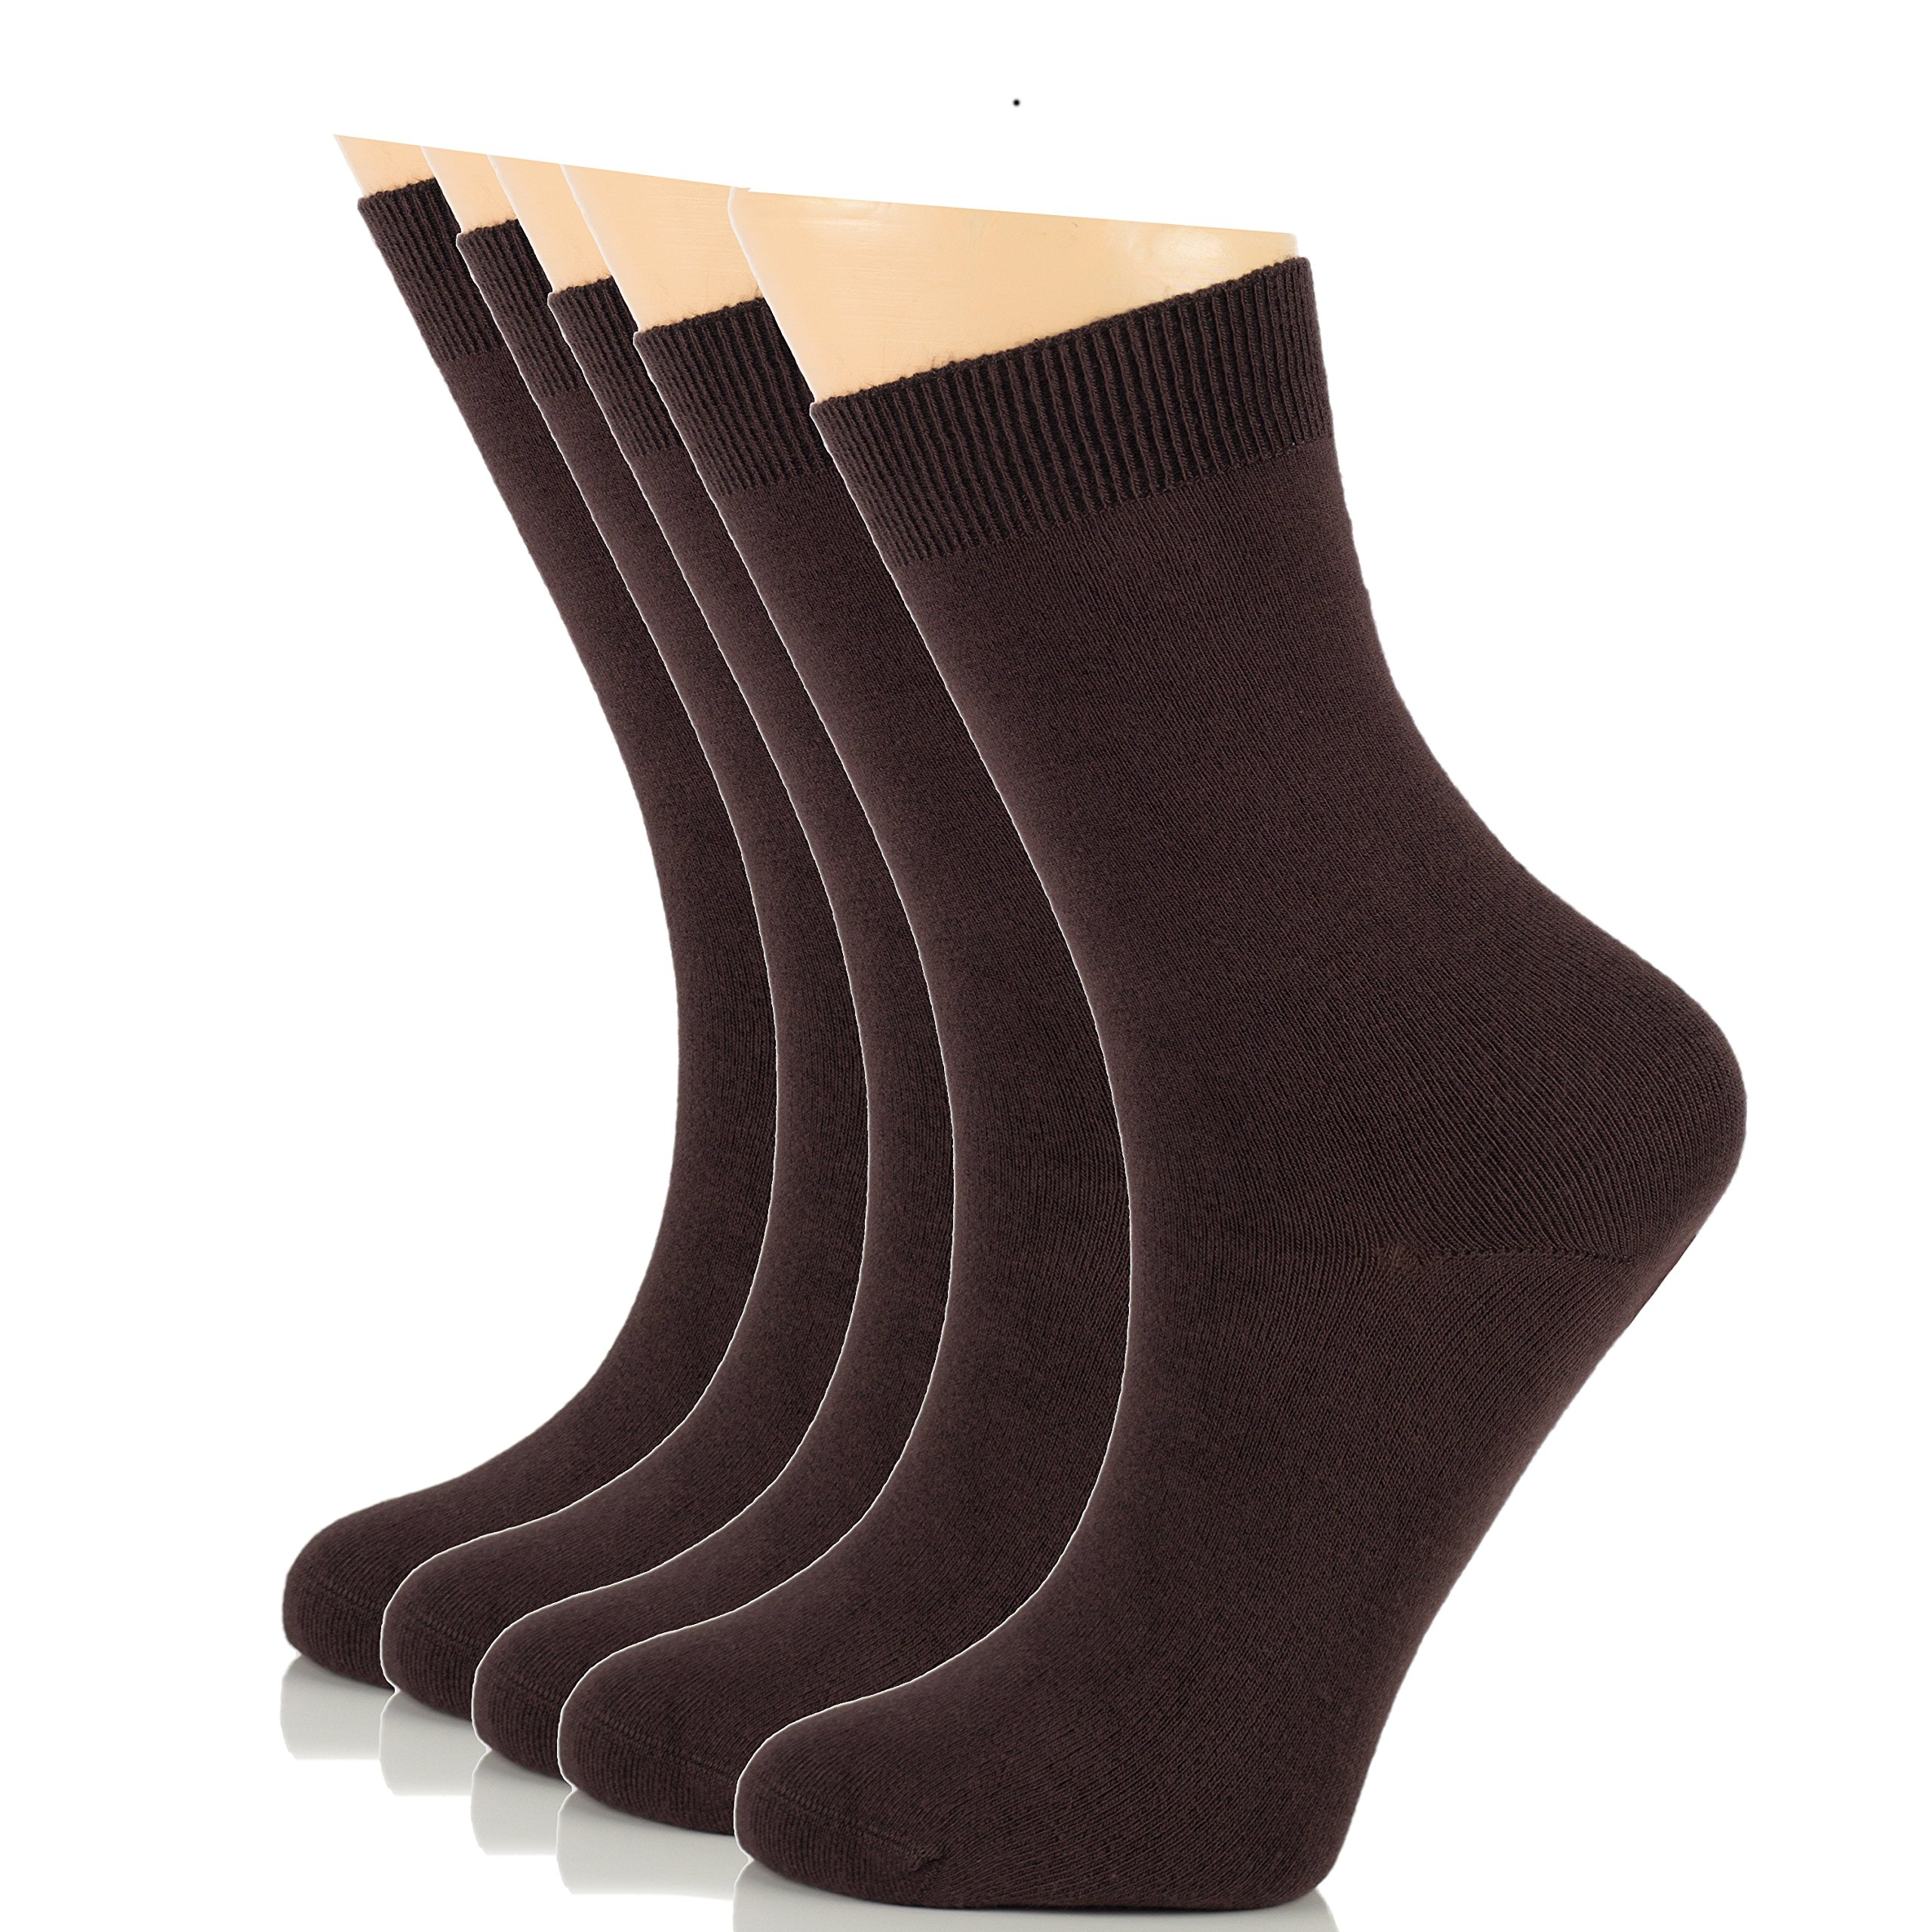 Elite Women's Business Casual Bamboo Socks, Crew Size (5 Pairs, European Product, Brown)